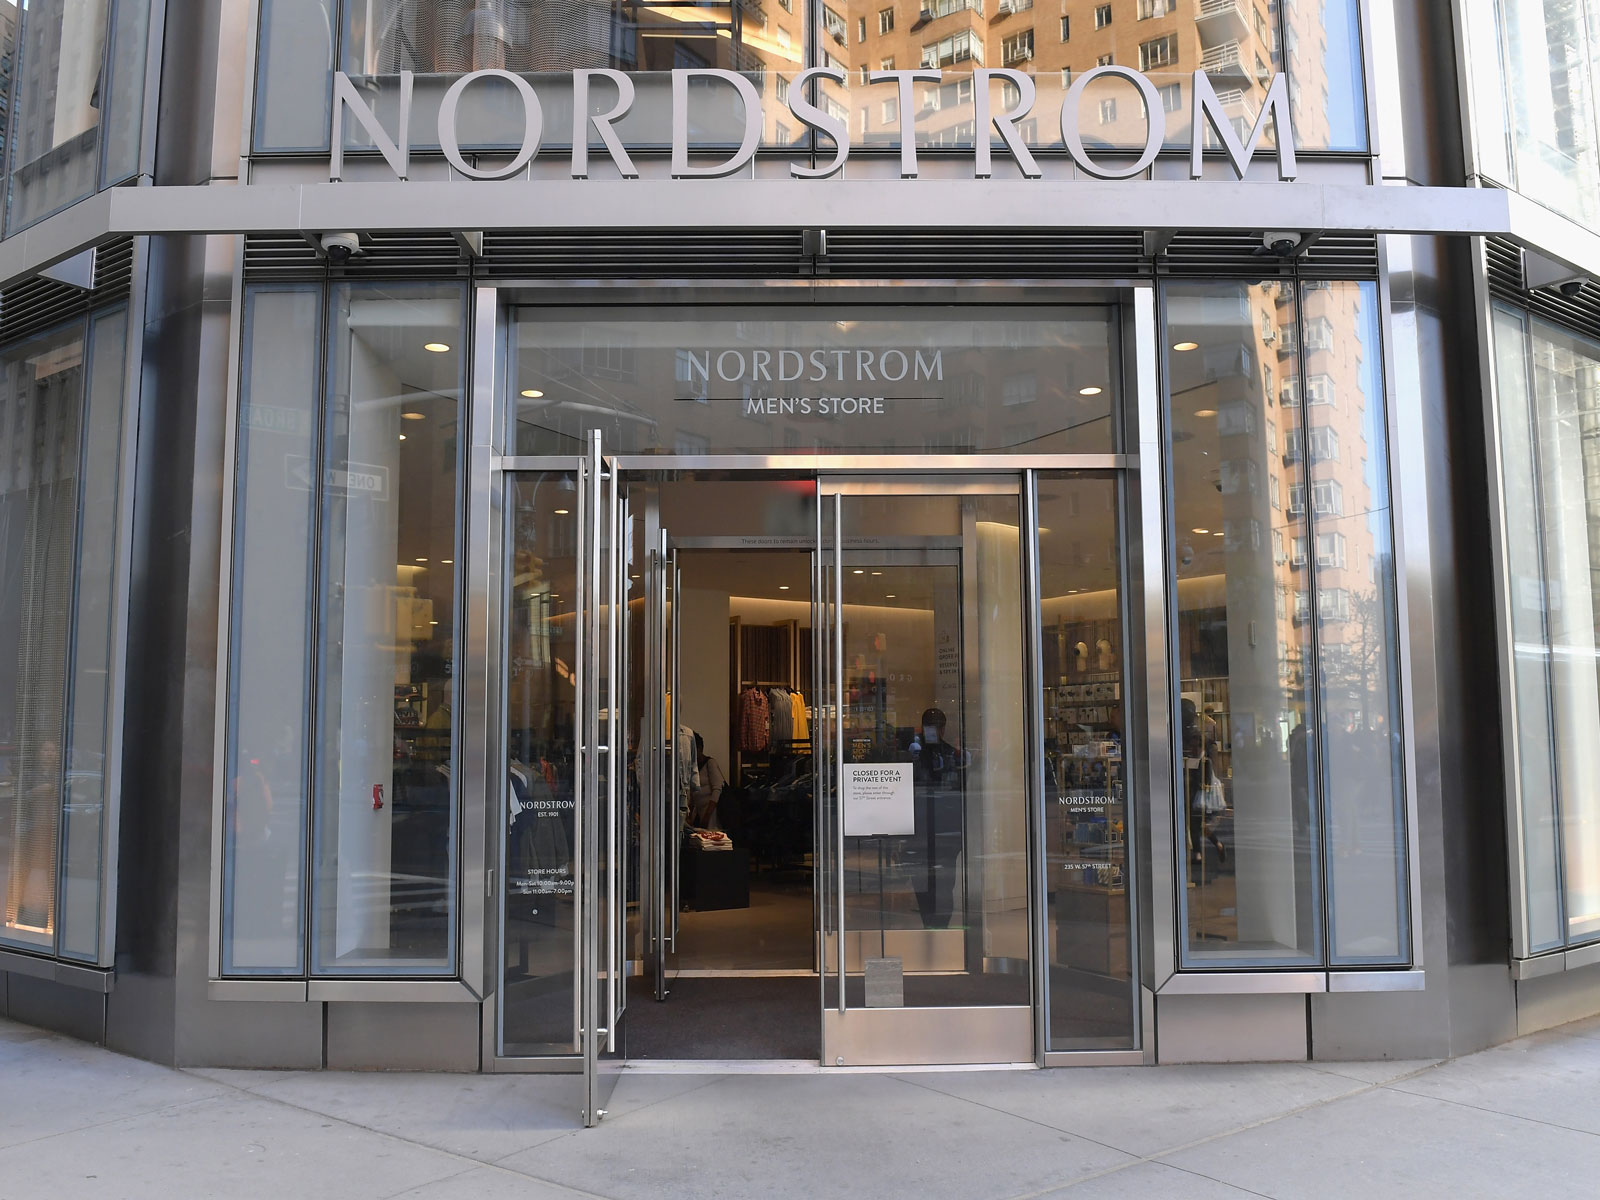 Nordstrom New York.